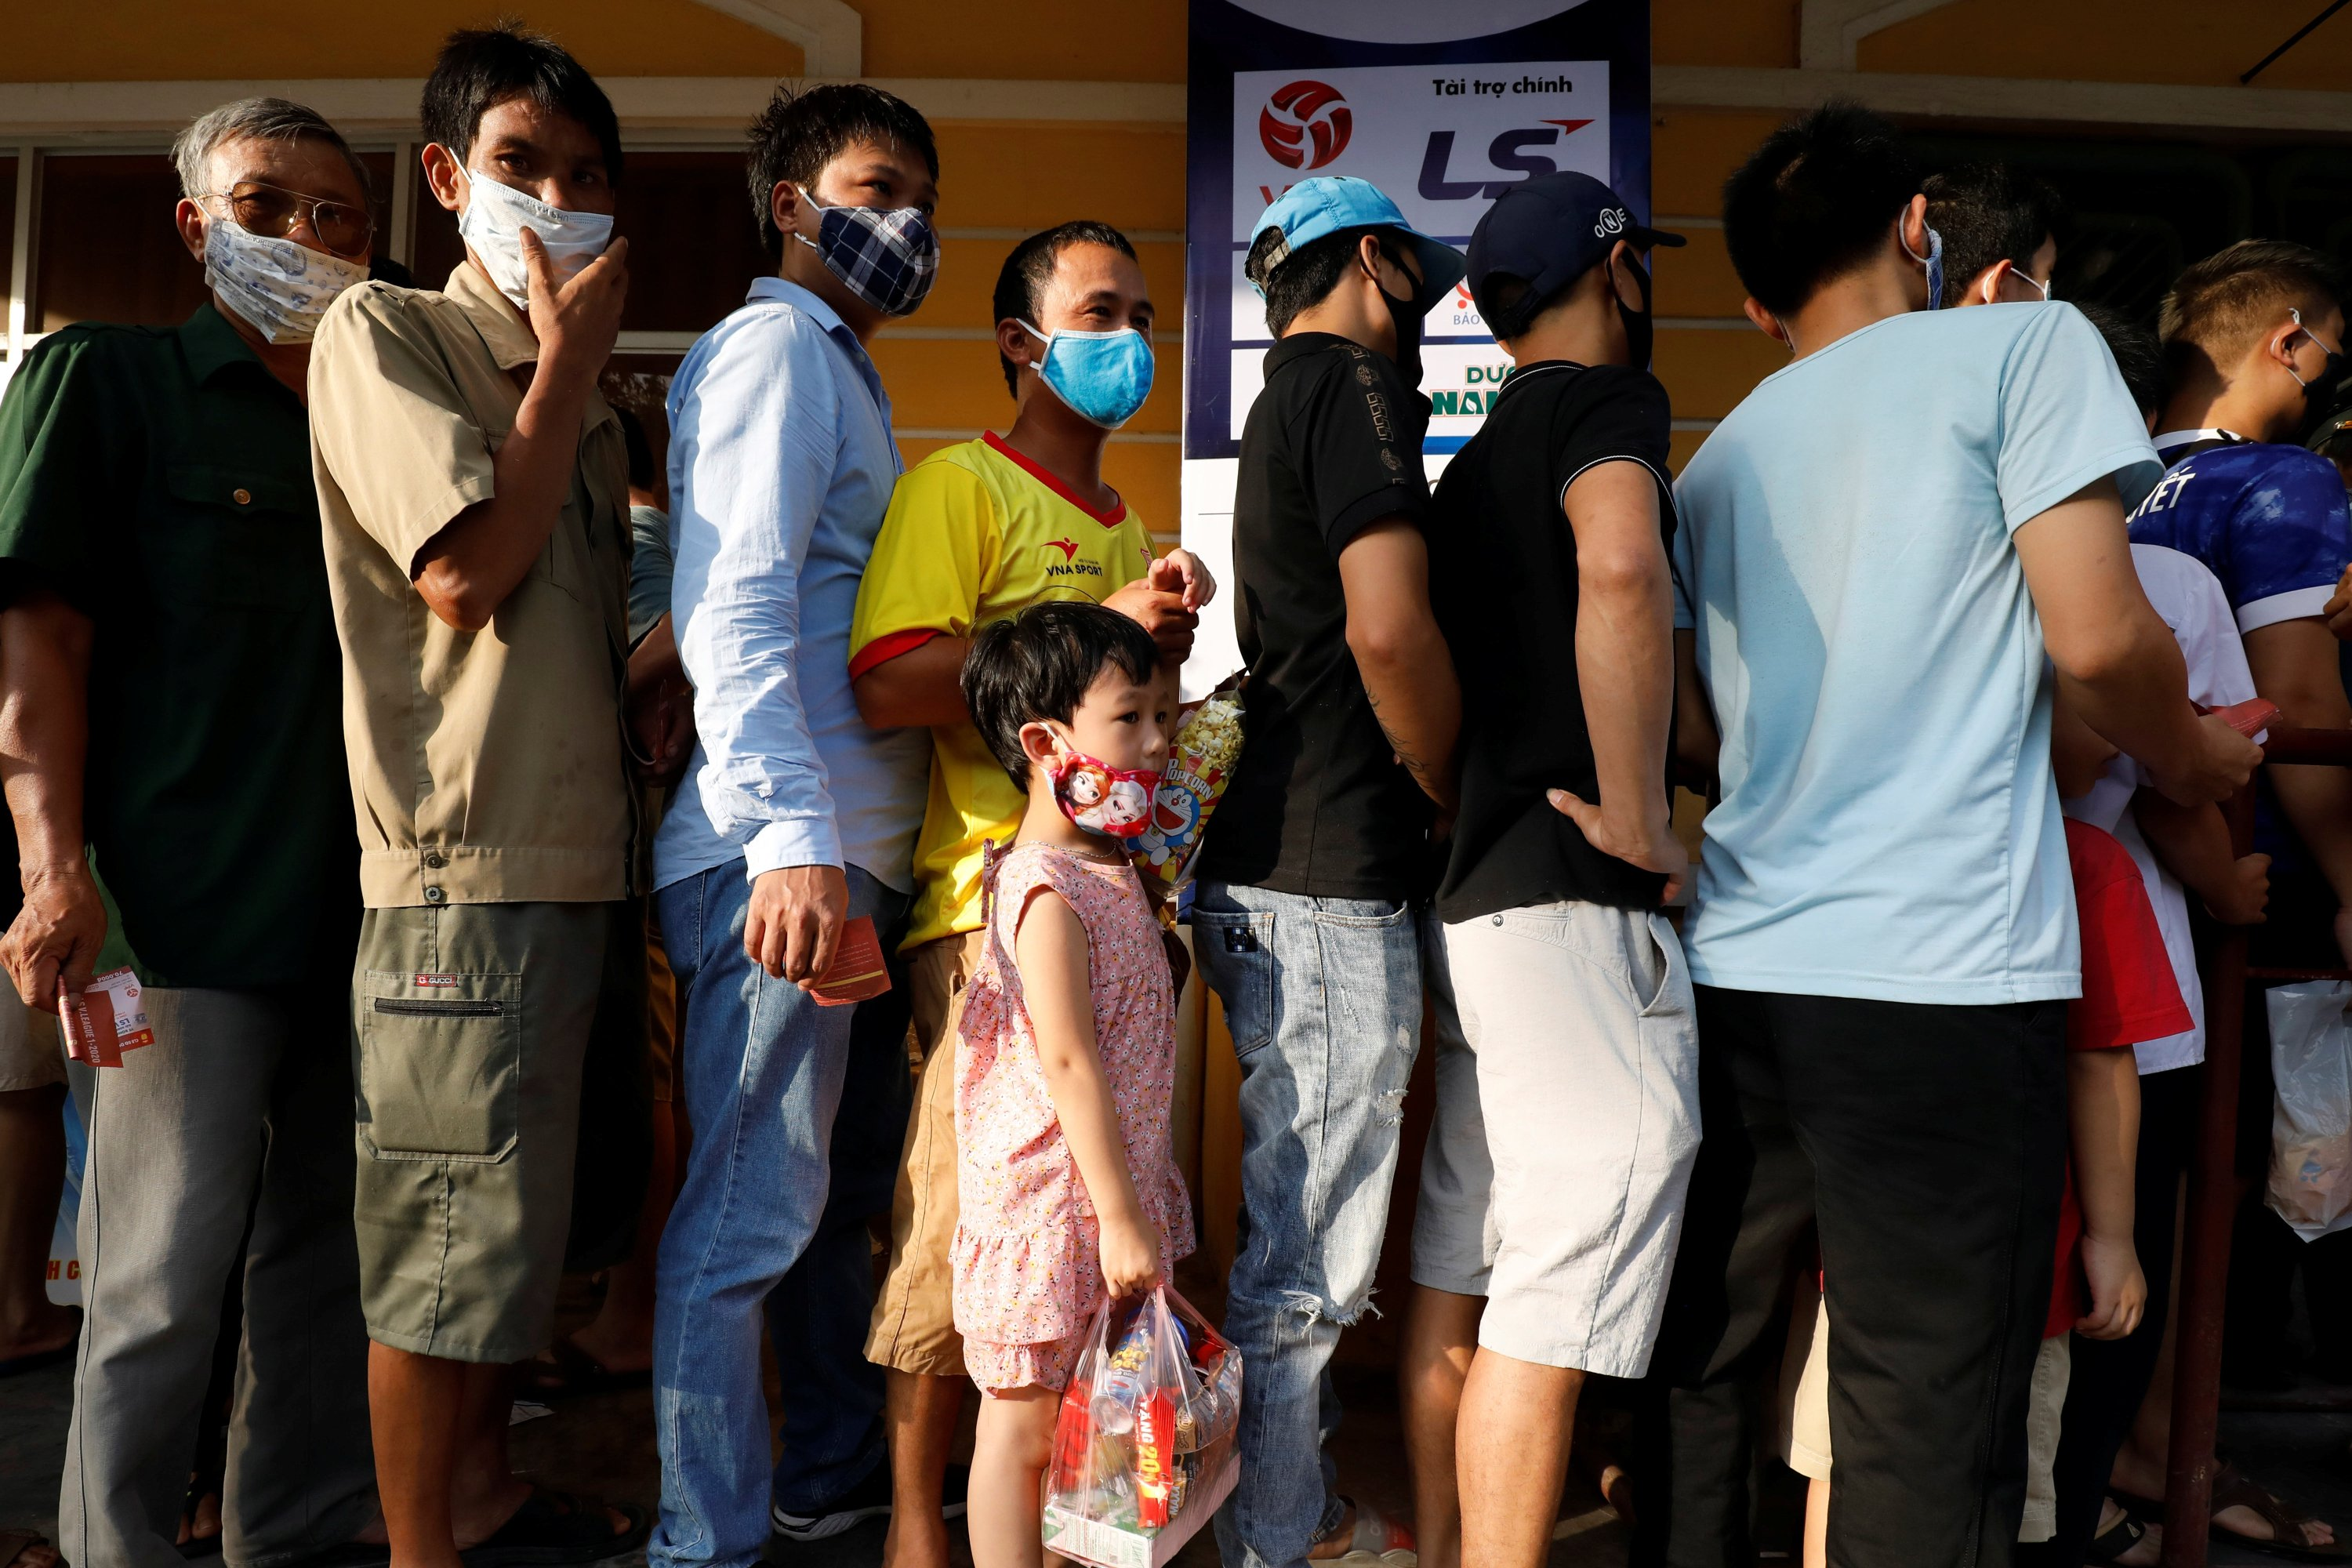 Vietnam confirms 1st COVID-19 case in nearly 100 days | Daily Sabah